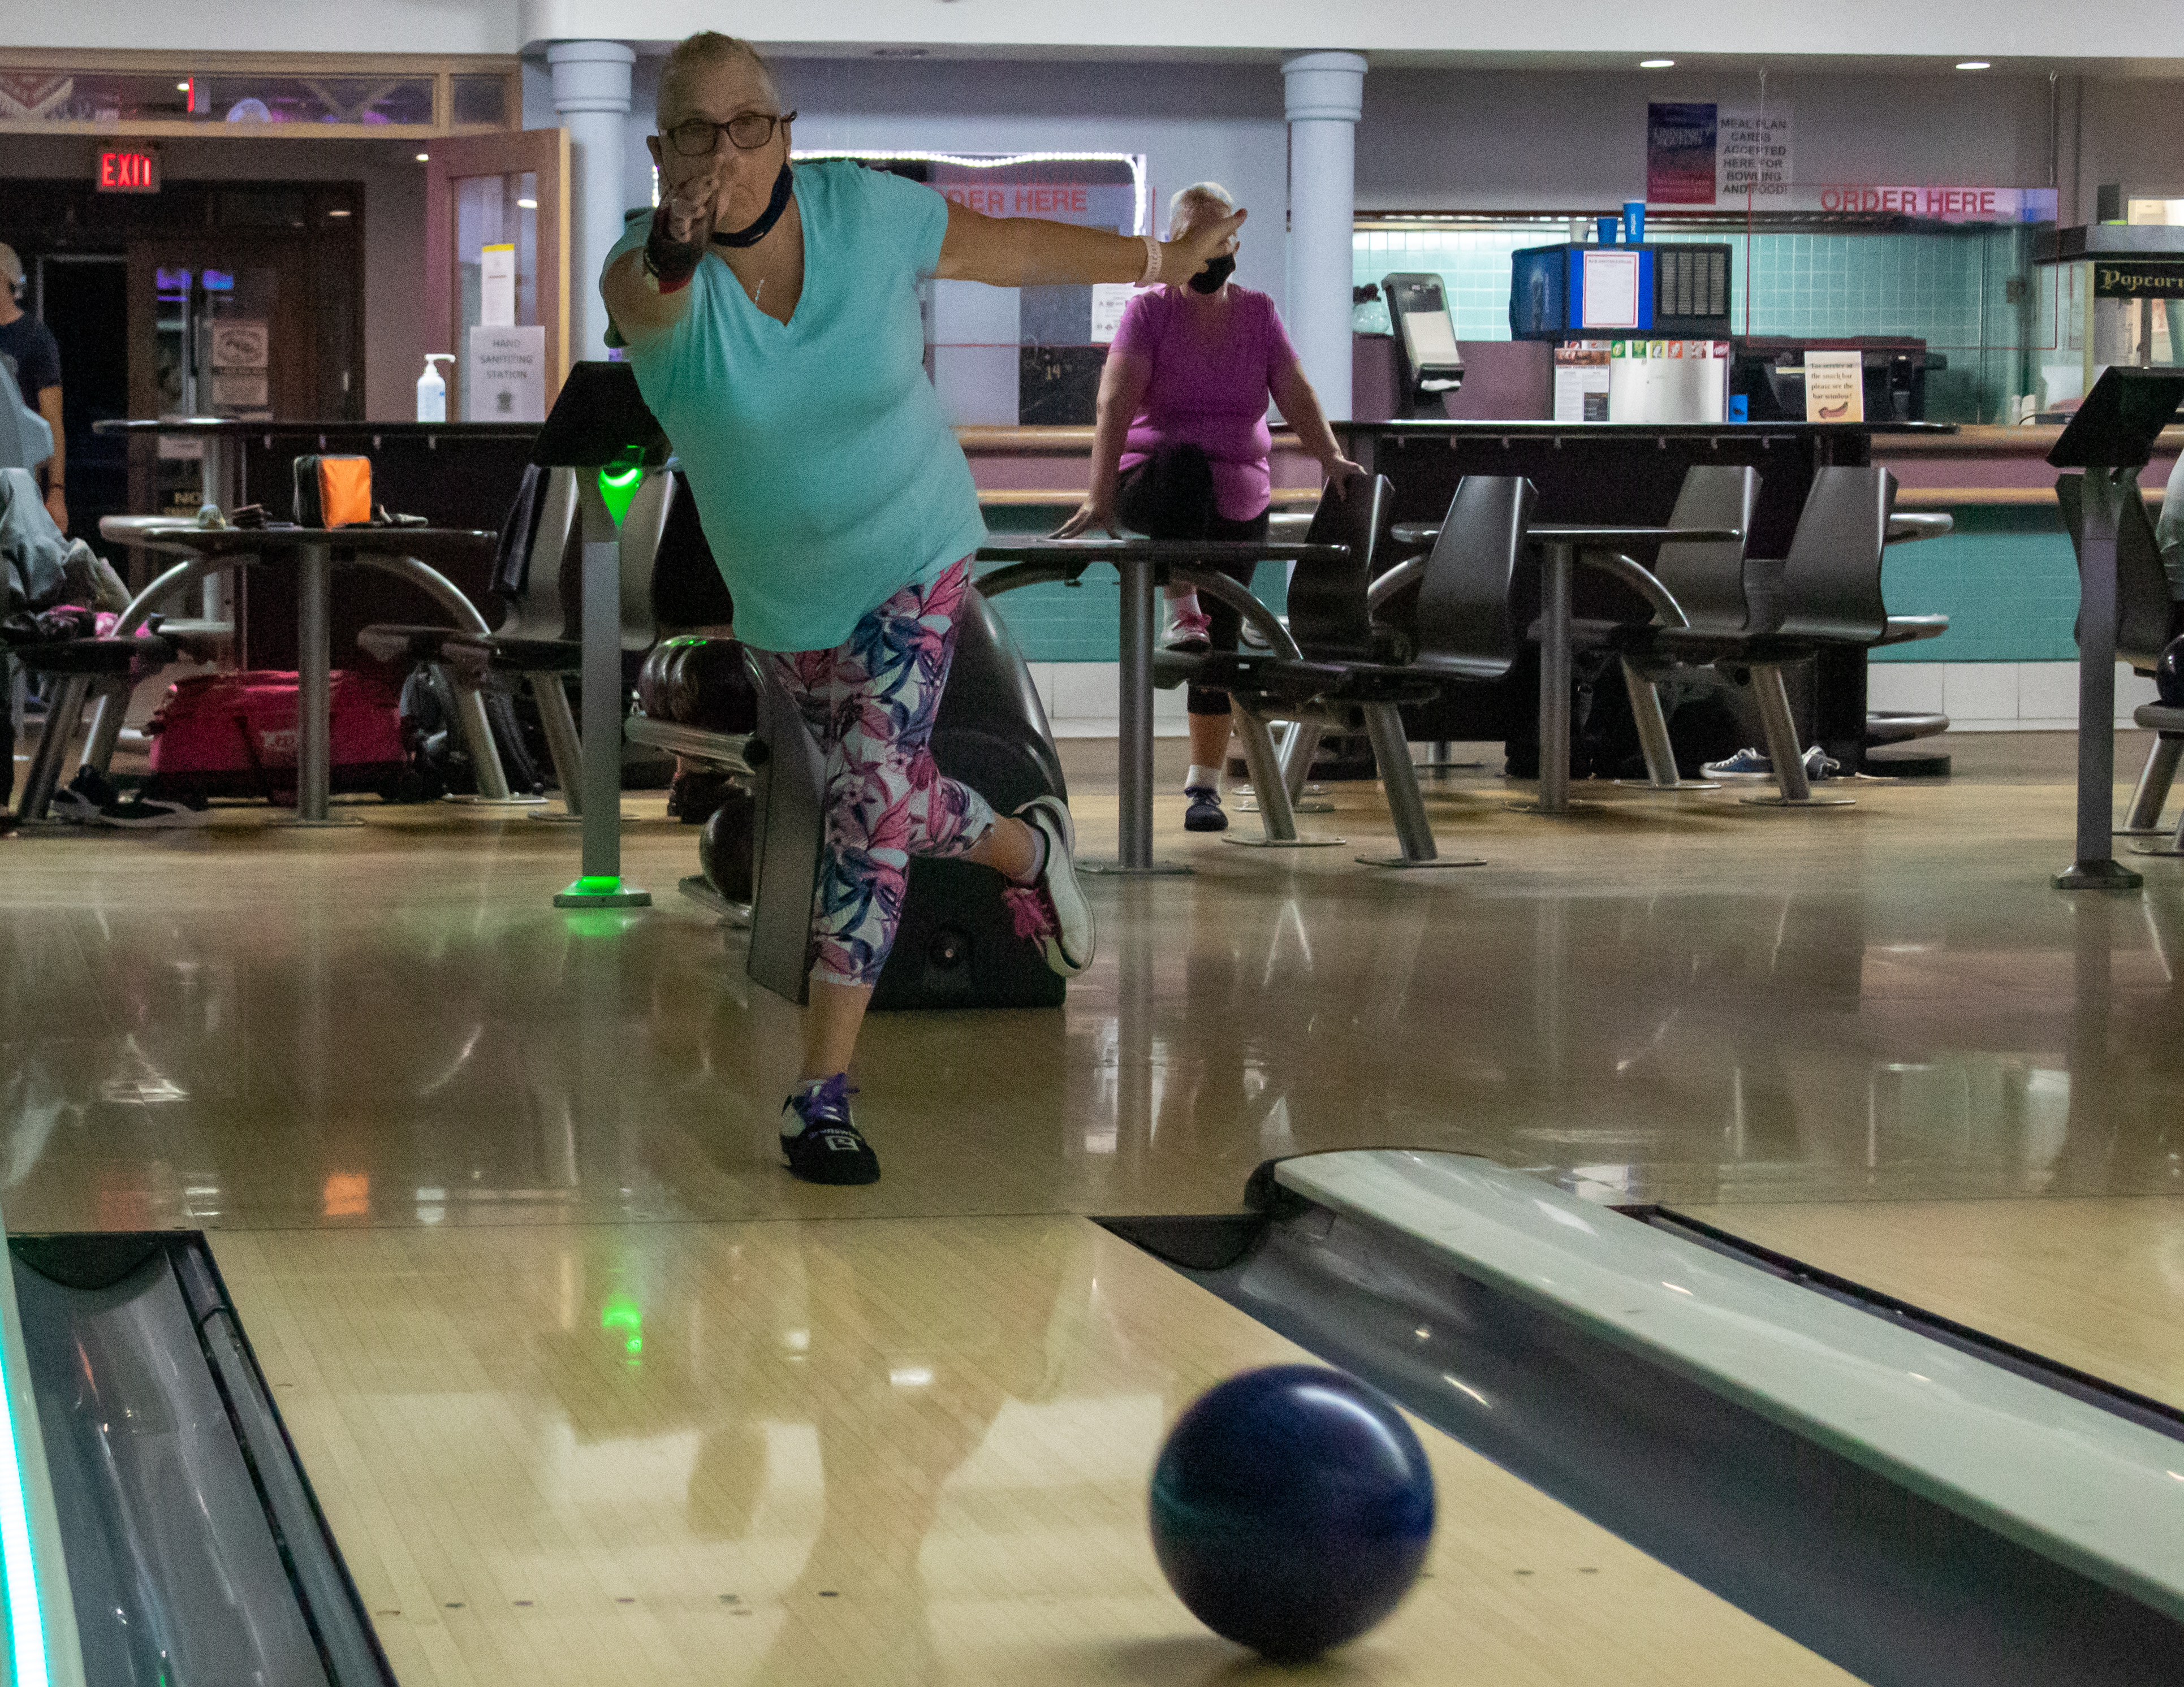 Bowling Photo (16 of 19).jpg